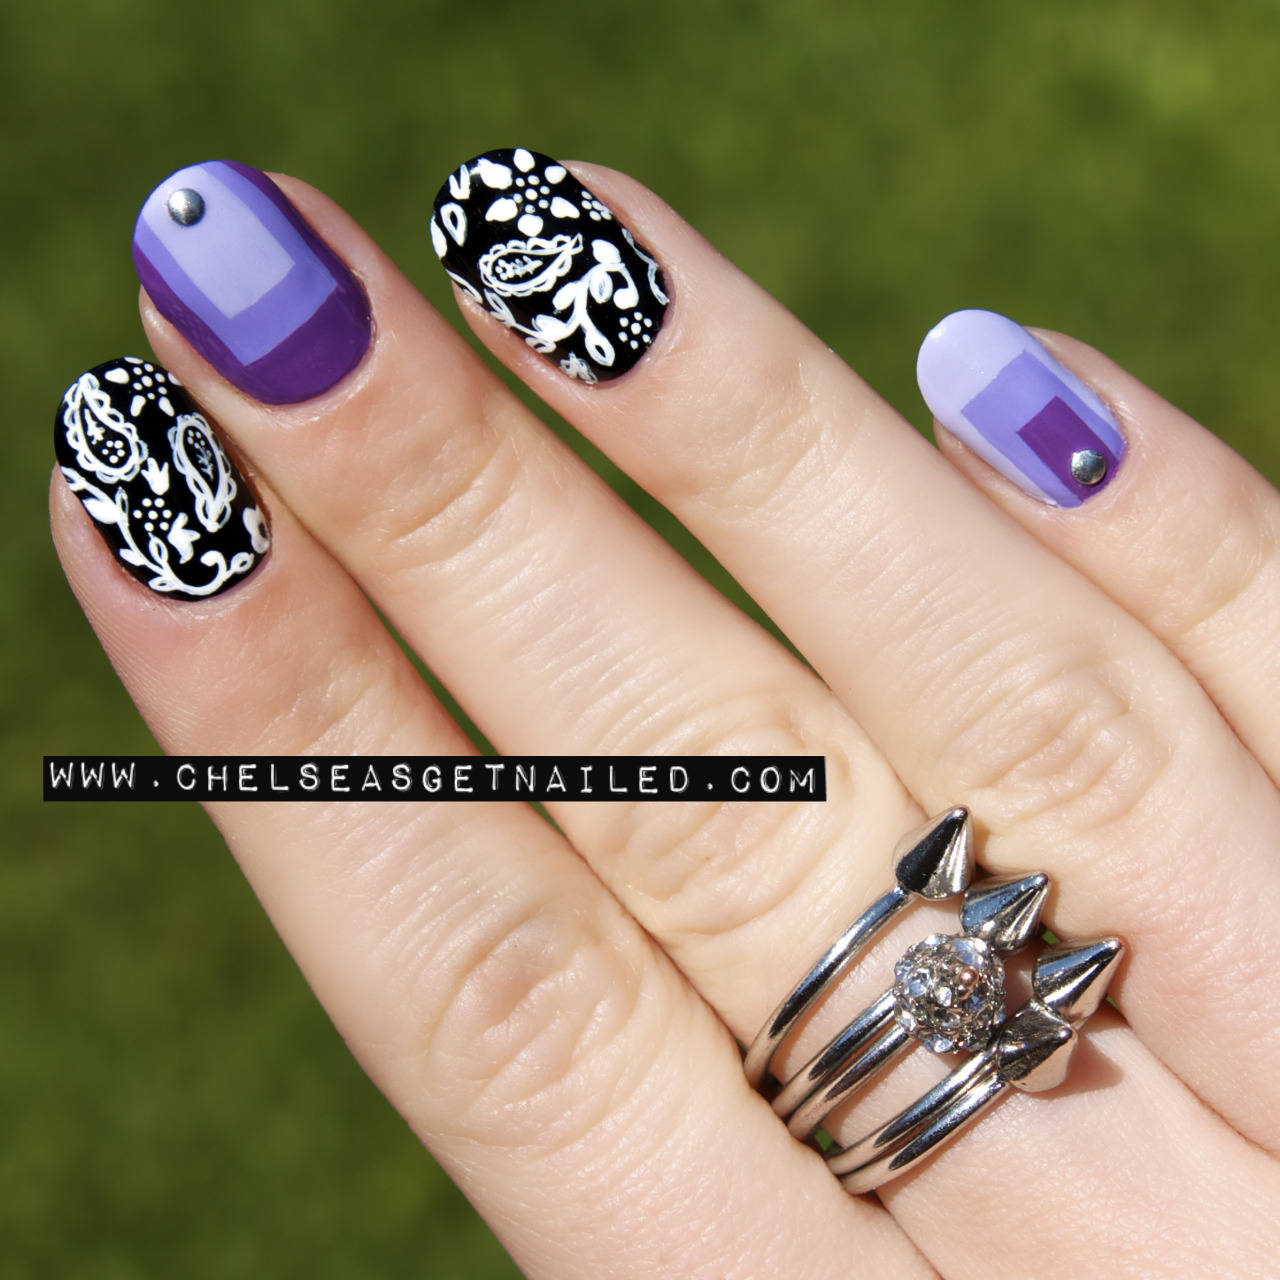 Paisley + Colorblock Nails - see the post here for all the colors used!